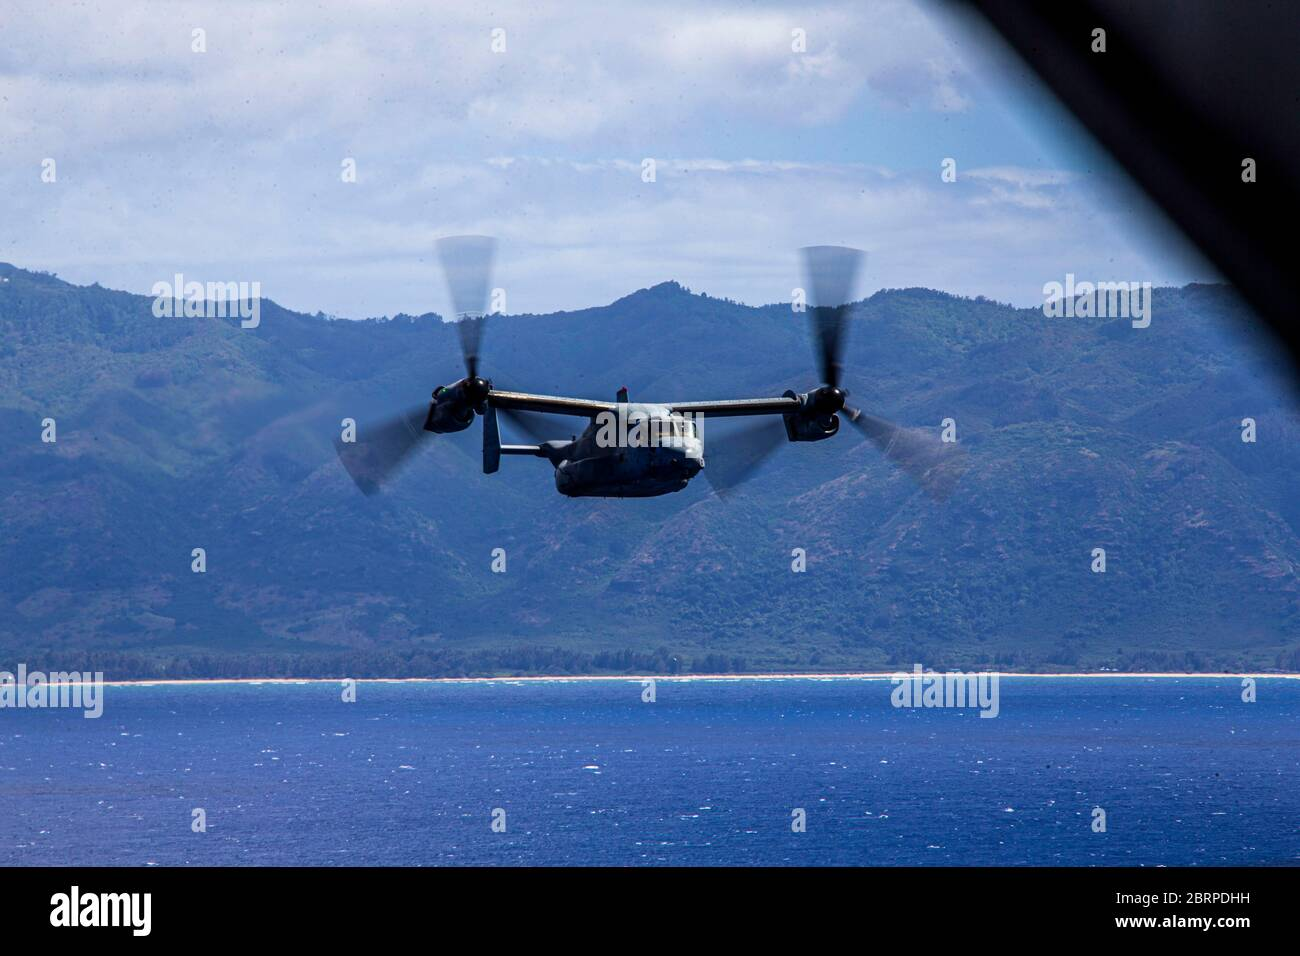 U.S. Marines with Marine Medium Tiltrotor Squadron 363, Marine Aircraft Group 24, operate an MV-22 Osprey during an integrated training mission, Marine Corps Air Station Kaneohe Bay, Marine Corps Base Hawaii, May 19, 2020. Utilizing three separate flying platforms, MAG-24 successfully launched seven CH-53E Super Stallions, seven MV-22B Ospreys, and two UH-1Y Venoms while hitting critical training objectives to produce maximum readiness. (U.S. Marine Corps photo by Lance Cpl. Jacob Wilson) Stock Photo